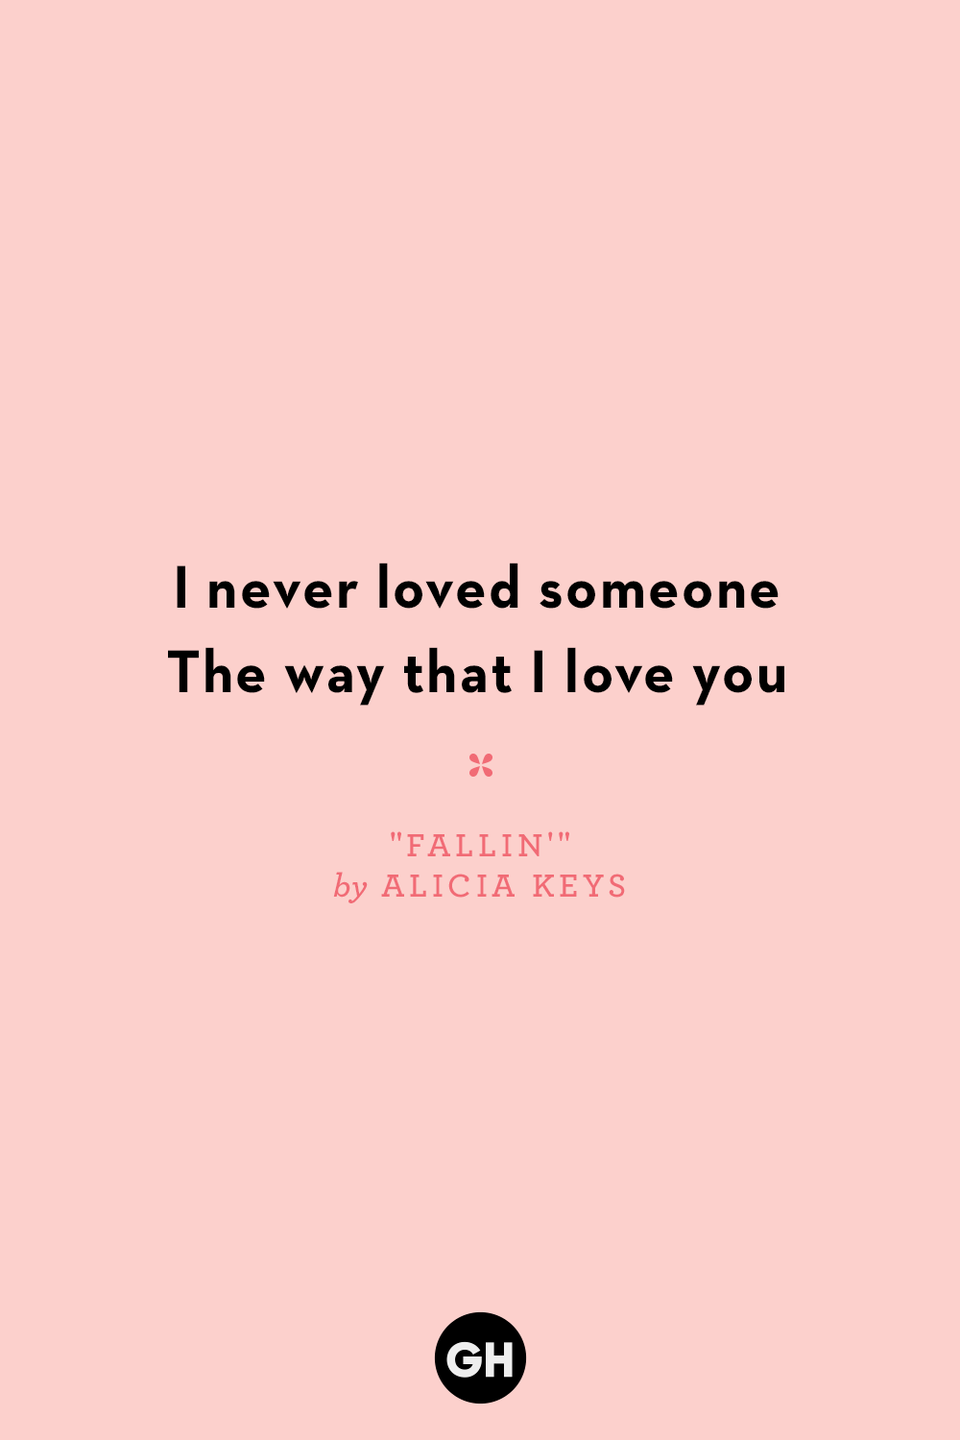 "<p>I never loved someone</p><p>The way that I love you</p><p><strong>RELATED: <a href=""https://www.goodhousekeeping.com/life/relationships/g3721/quotes-about-love/"" rel=""nofollow noopener"" target=""_blank"" data-ylk=""slk:60+ Best Valentine's Day-Approved Love Quotes"" class=""link rapid-noclick-resp"">60+ Best Valentine's Day-Approved Love Quotes</a></strong></p>"